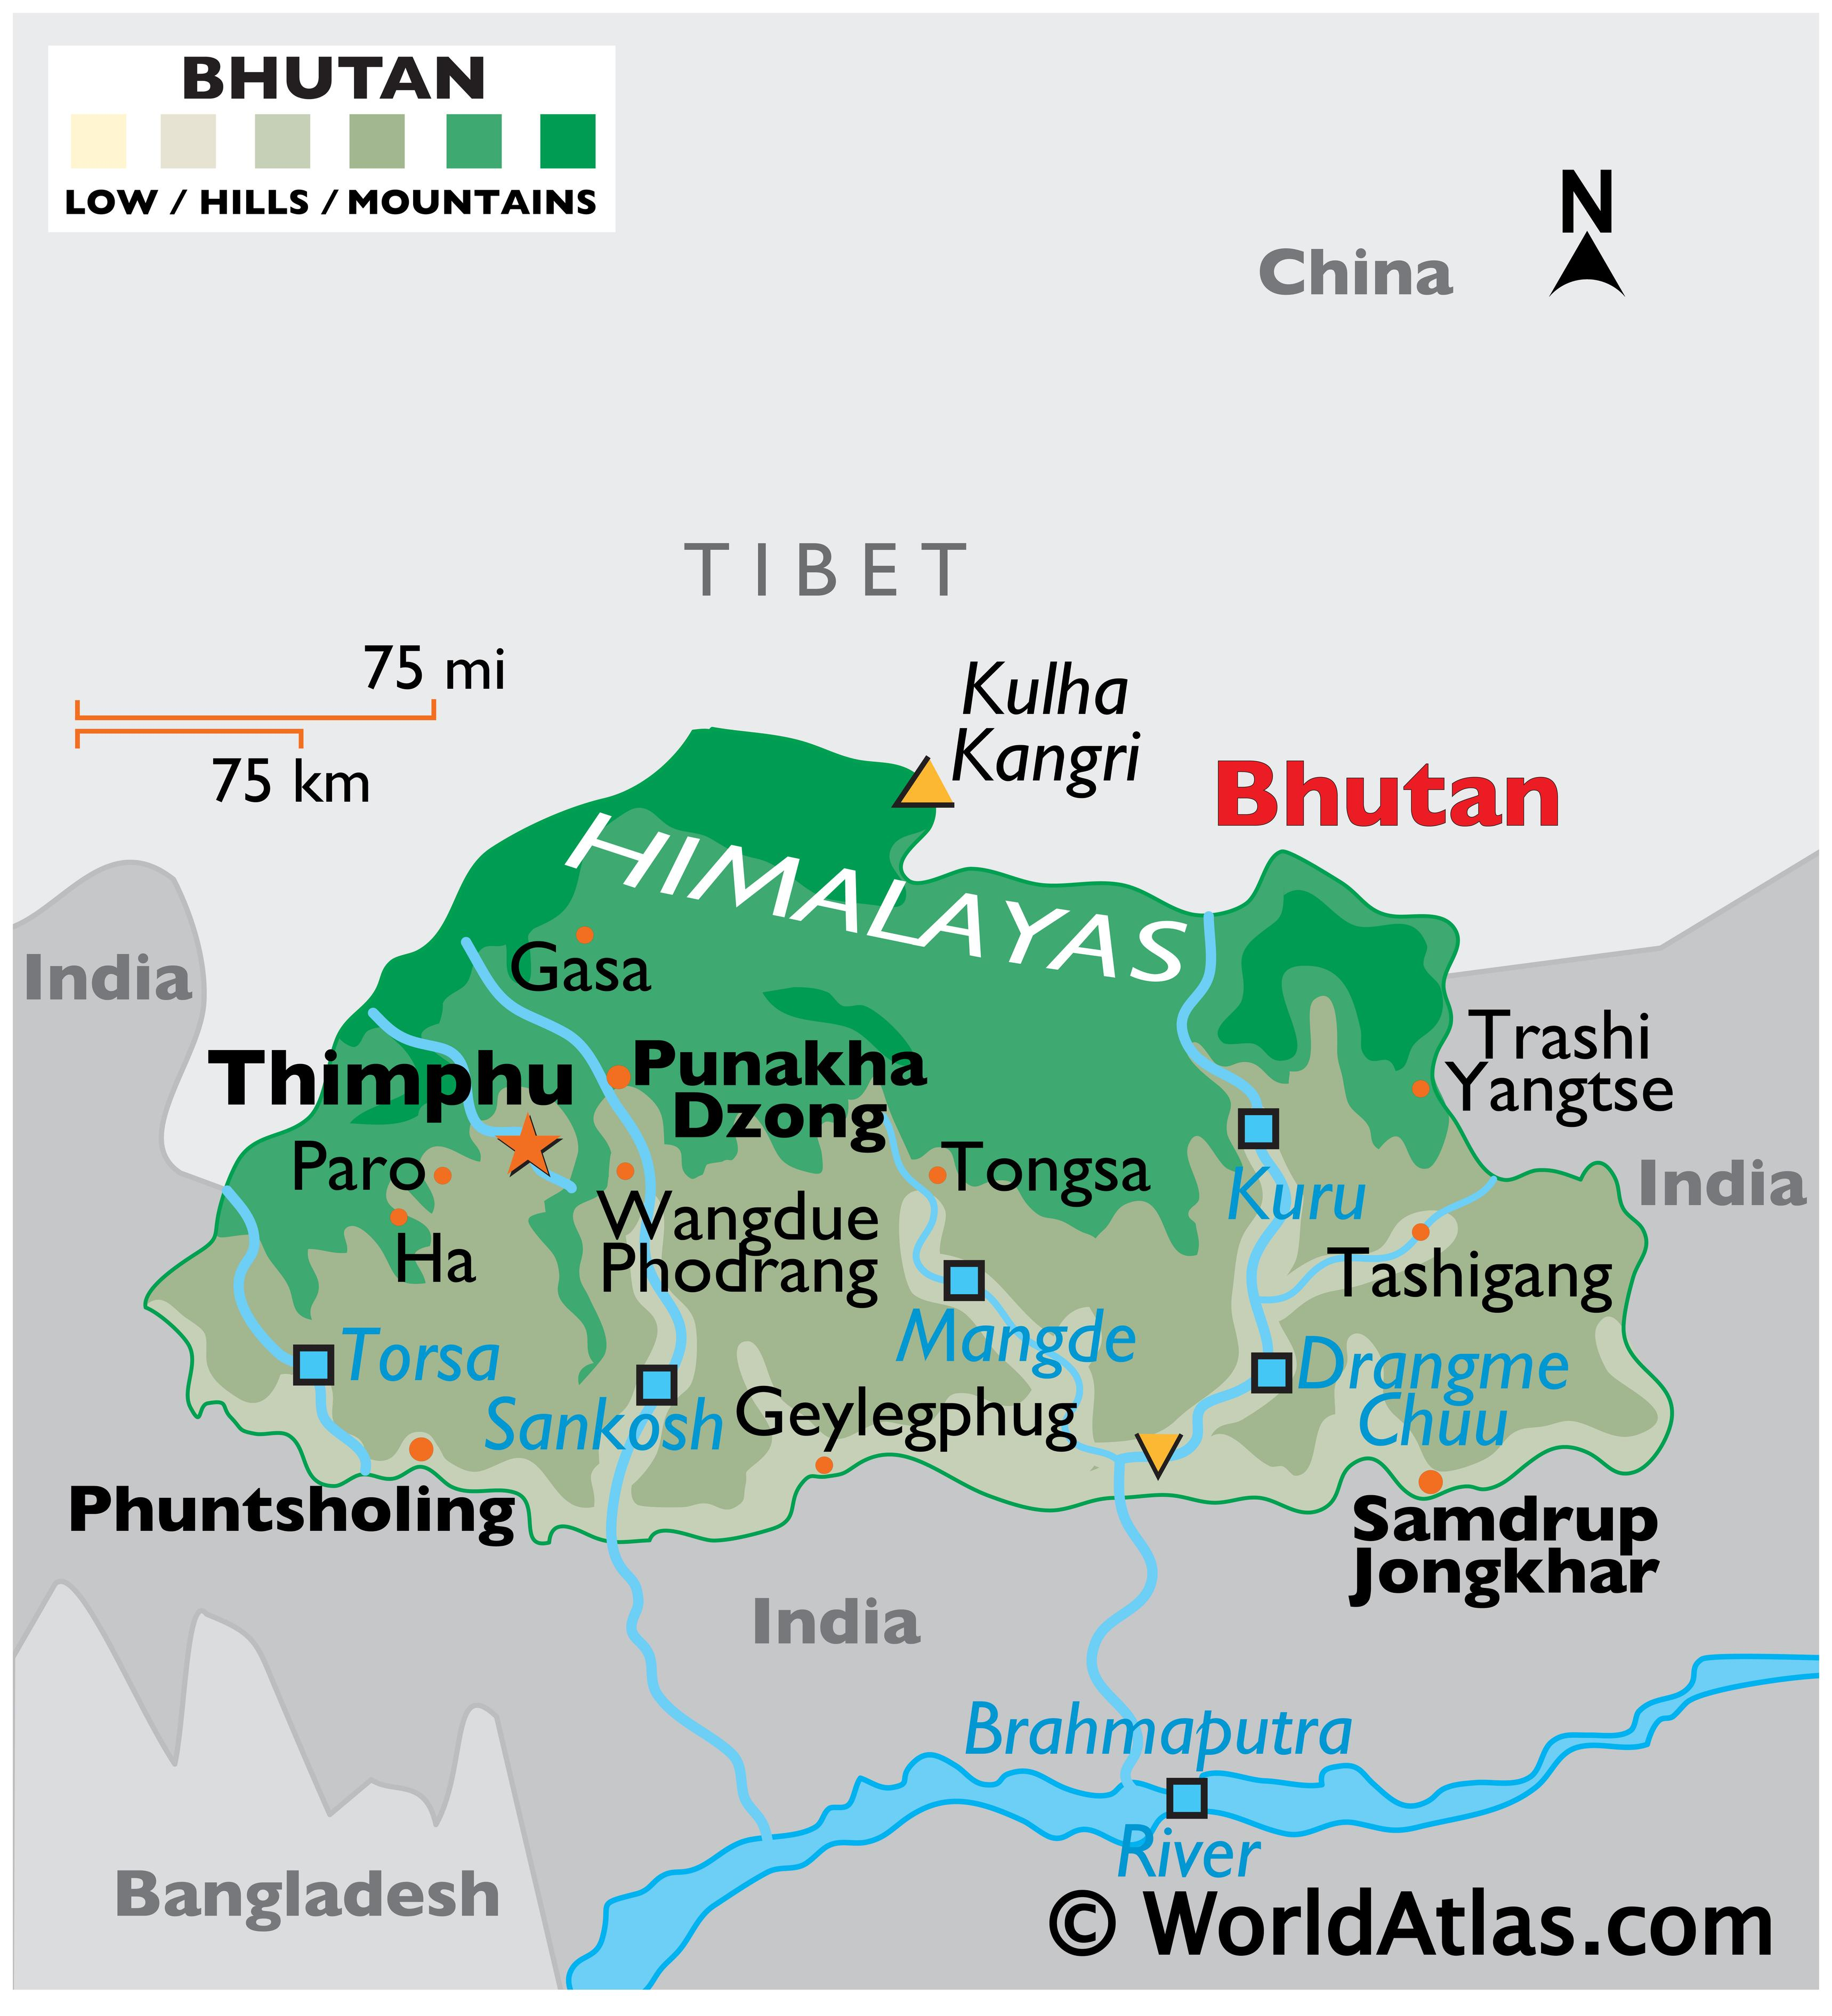 Physical Map of the Kingdom of Bhutan showing relief, the Himalayan range, major rivers, bordering countries, highest and lowest points, and more.